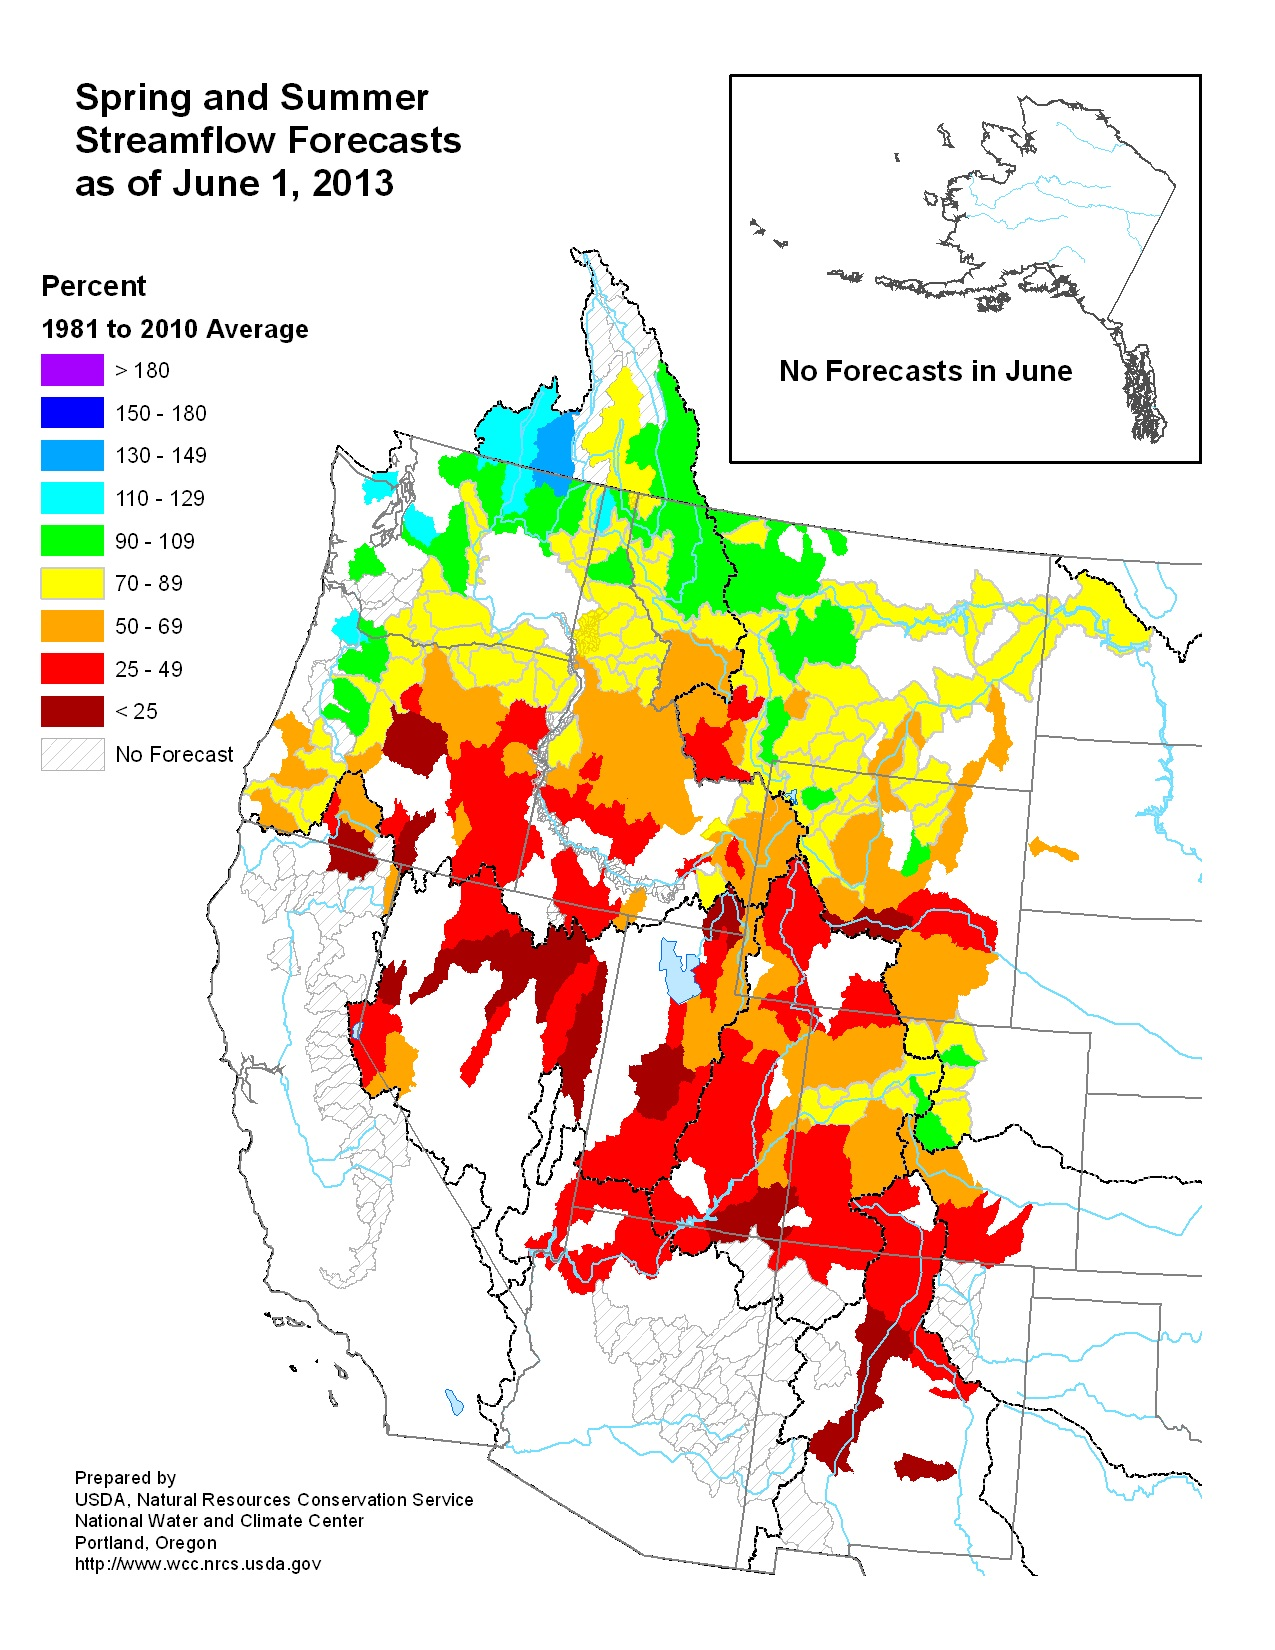 June 2013 Spring and Summer Streamflow Forecasts